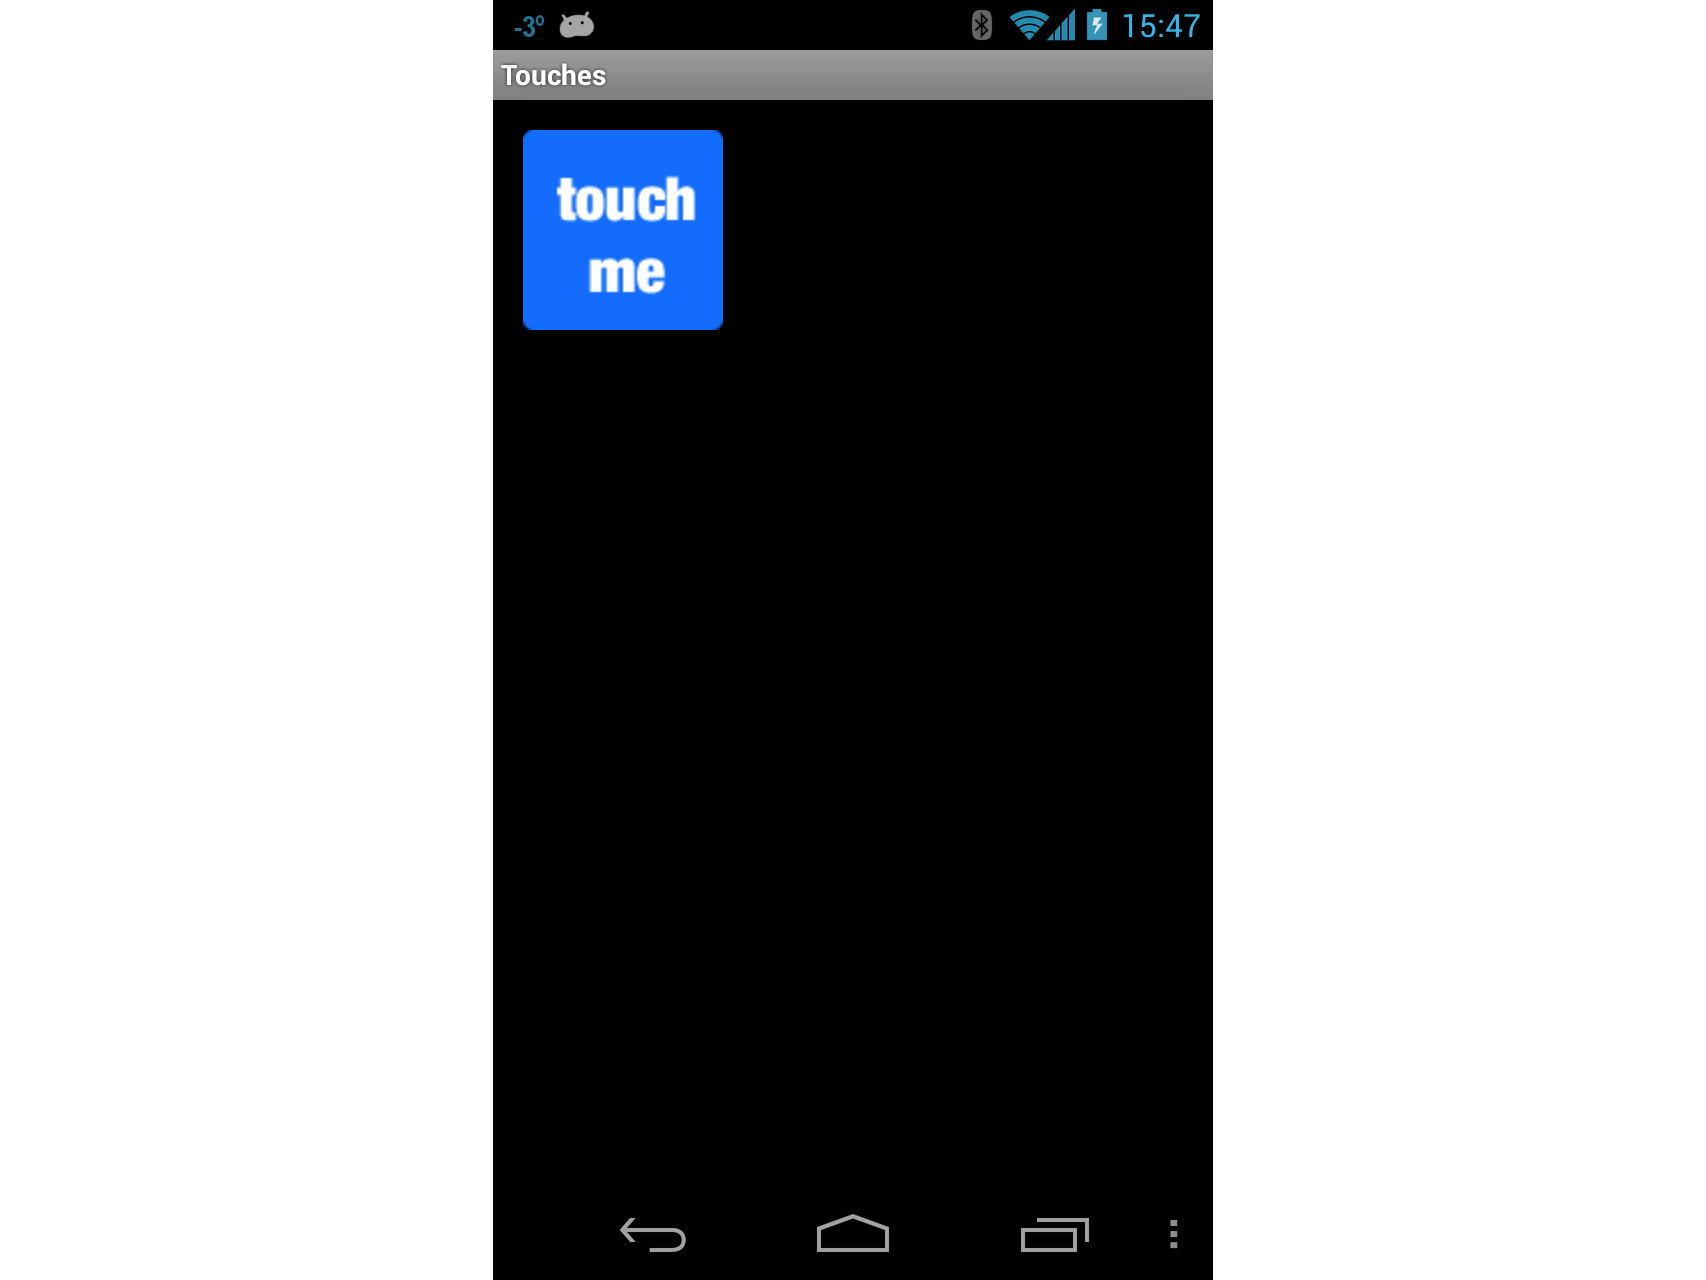 Walkthrough - Using Touch in Android - Xamarin | Microsoft Docs